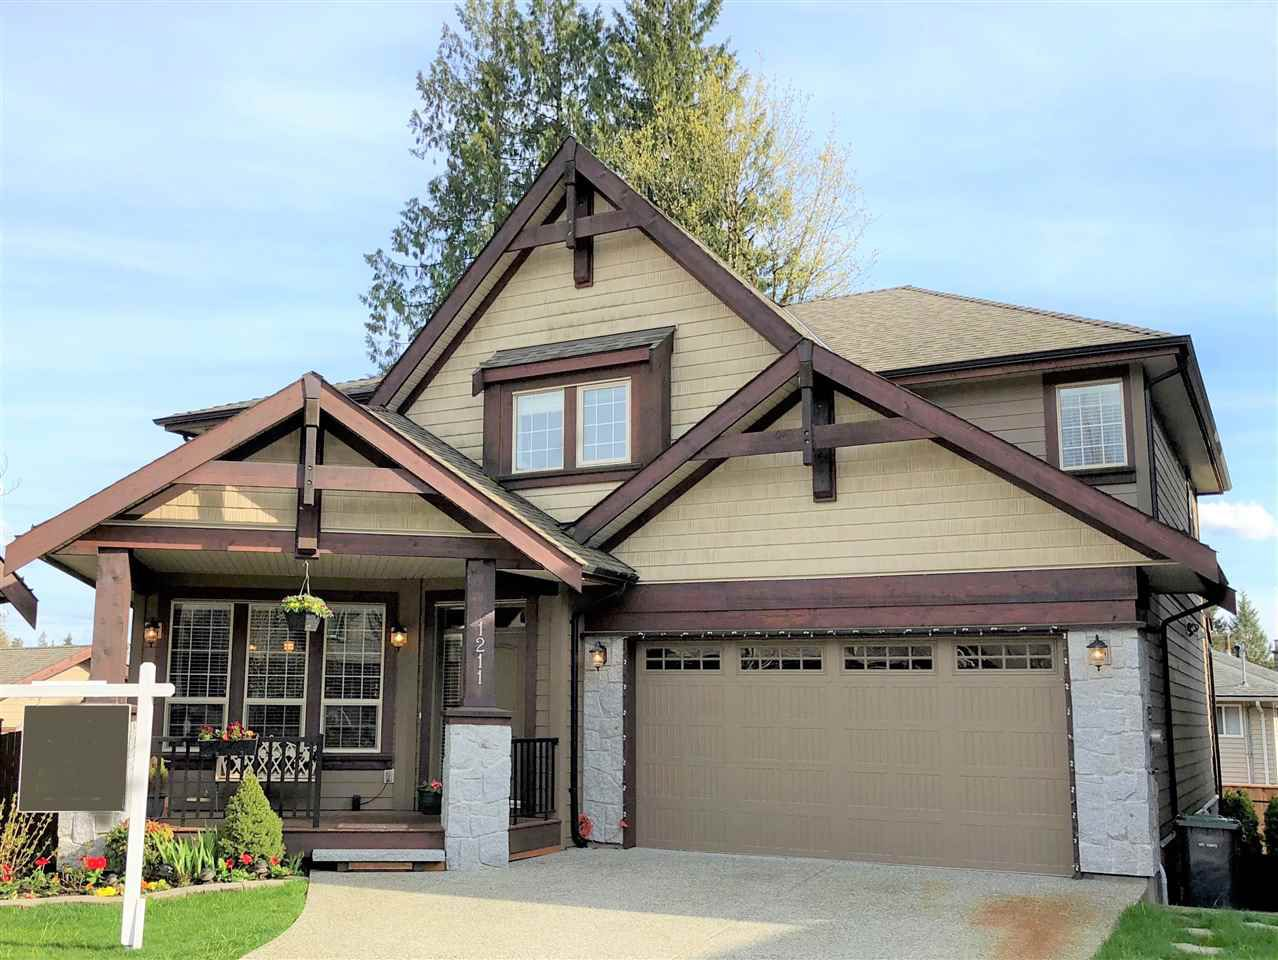 """Main Photo: 1211 BURKEMONT Place in Coquitlam: Burke Mountain House for sale in """"WHISPER CREEK"""" : MLS®# R2338437"""